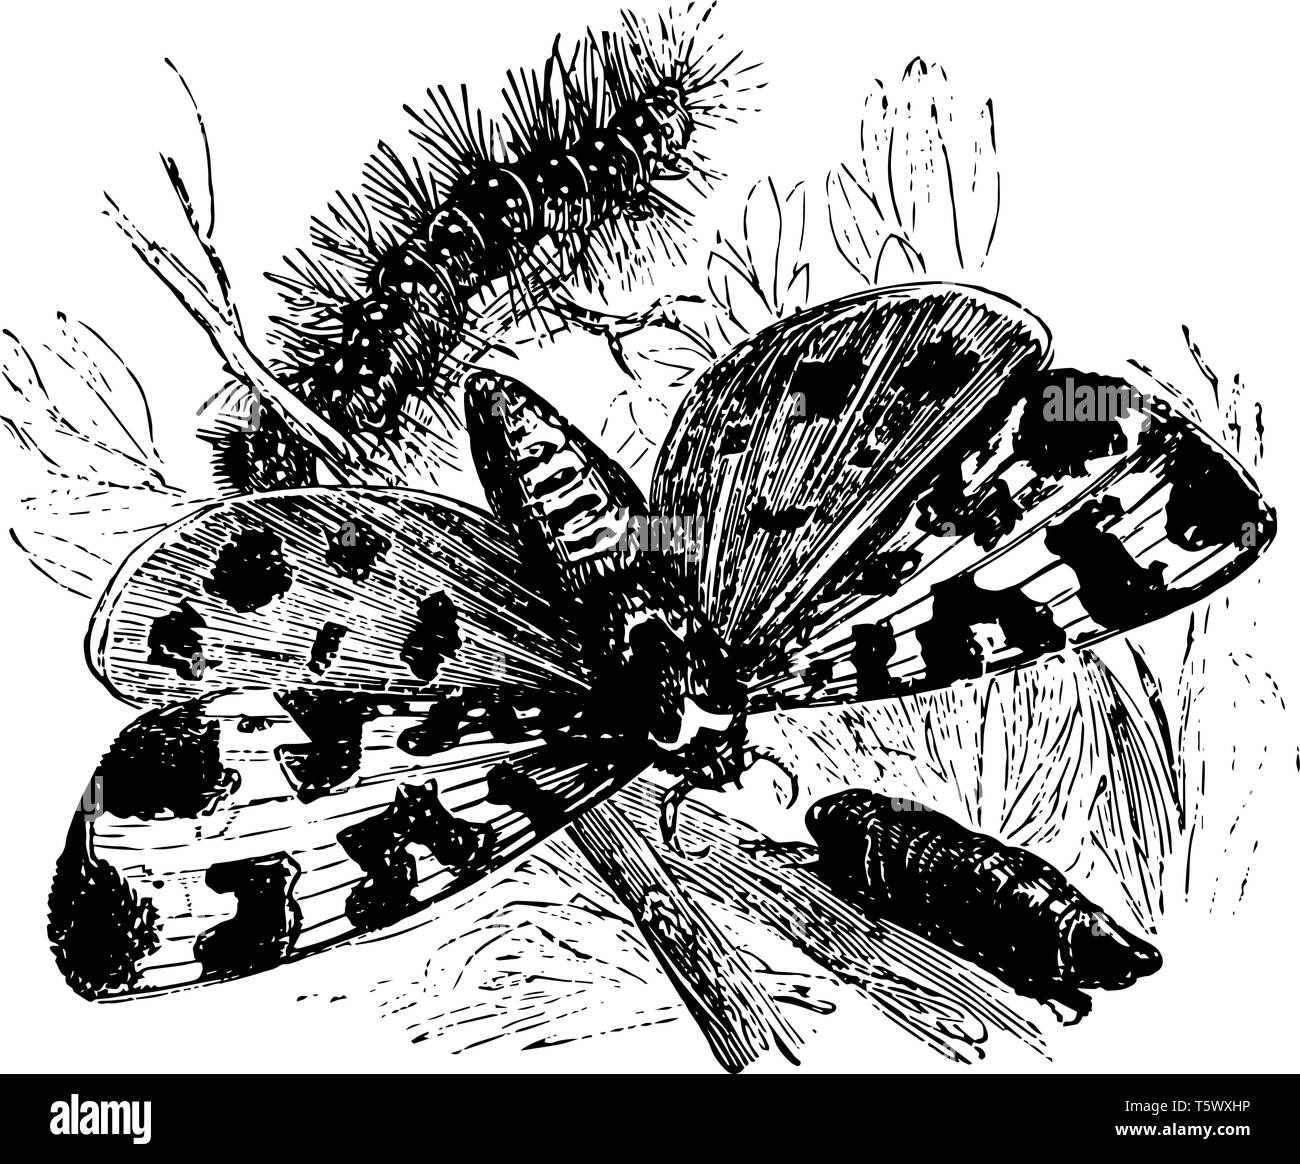 Tiger Wings Drawing Photos Tiger Wings Drawing Images Alamy